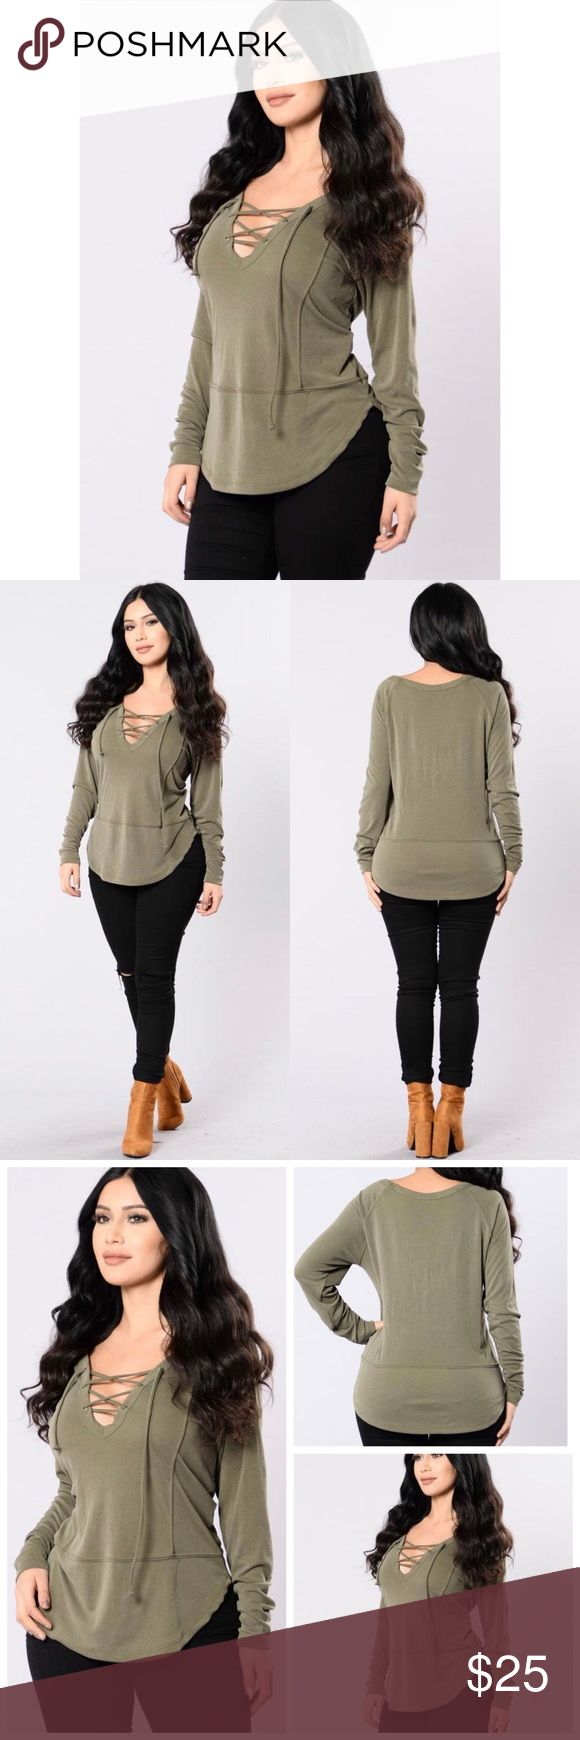 ☪️Fashion Nova Olive Lace Up Long Sleeve Brand is Fashion Nova Size is Small Excellent Condition  Olive Green Color  No Rips Stains or HolesEXACT item is being modeled in the pictures!  Stretchy material Price is FIRM  I Ship Same Day or Next Day Latest!  I Do NOT Trade  Fashion Nova Tops Blouses